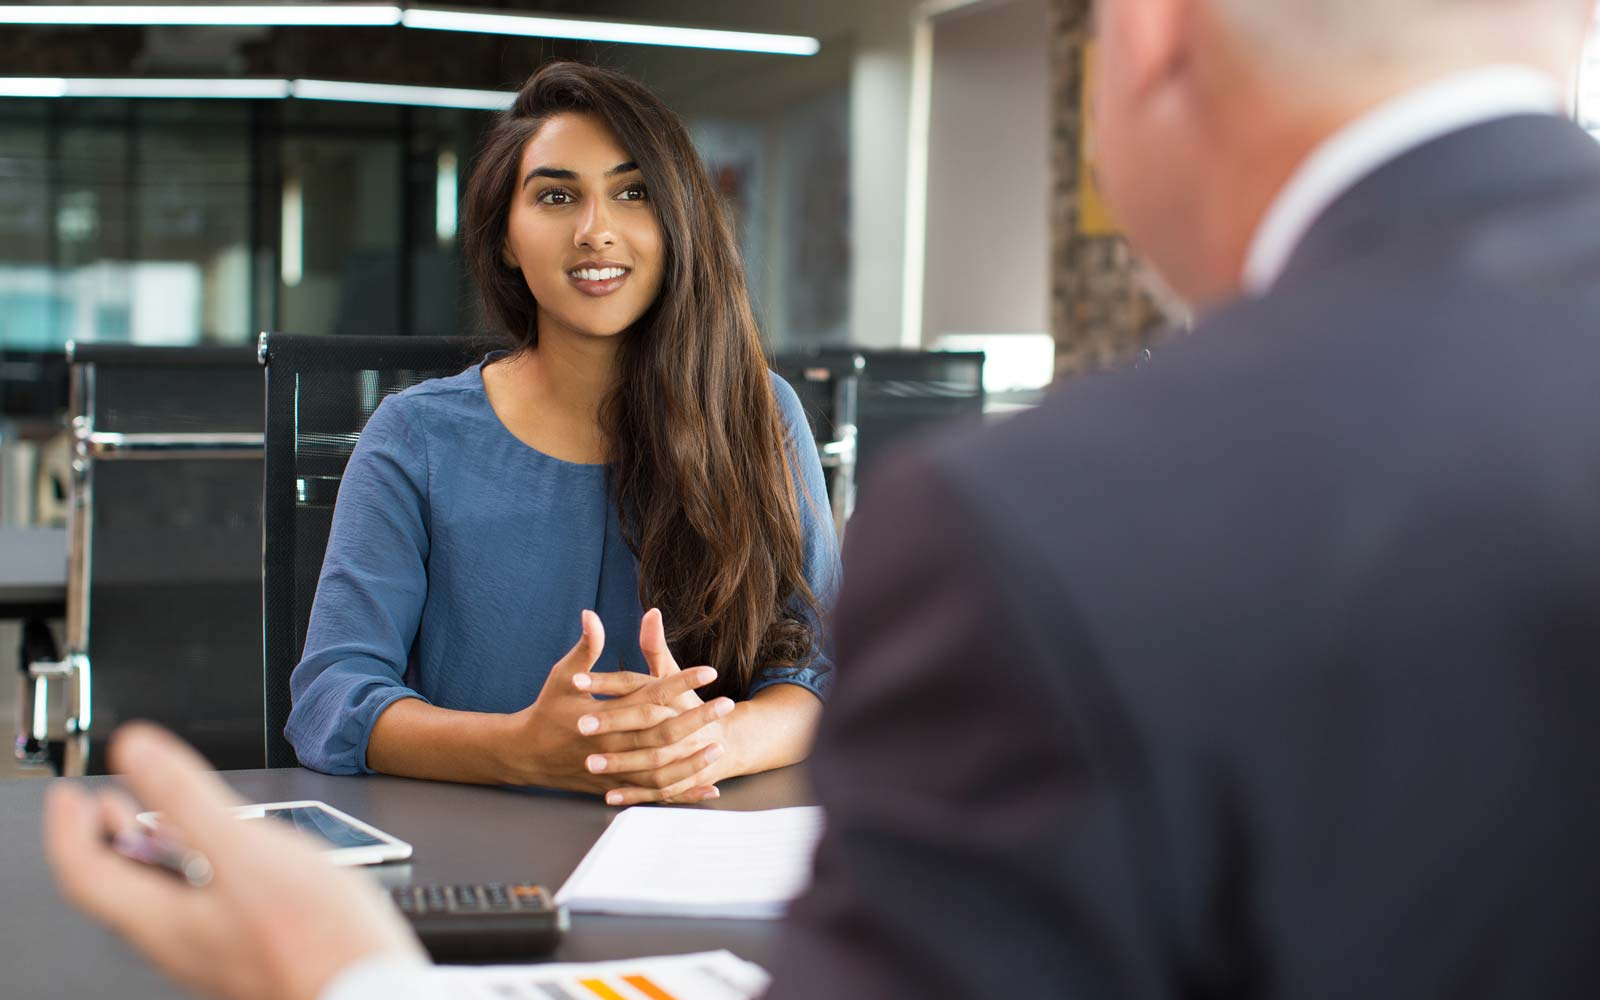 Portrait of young Indian female client or candidate sitting at table, talking to senior male manager and smiling in office